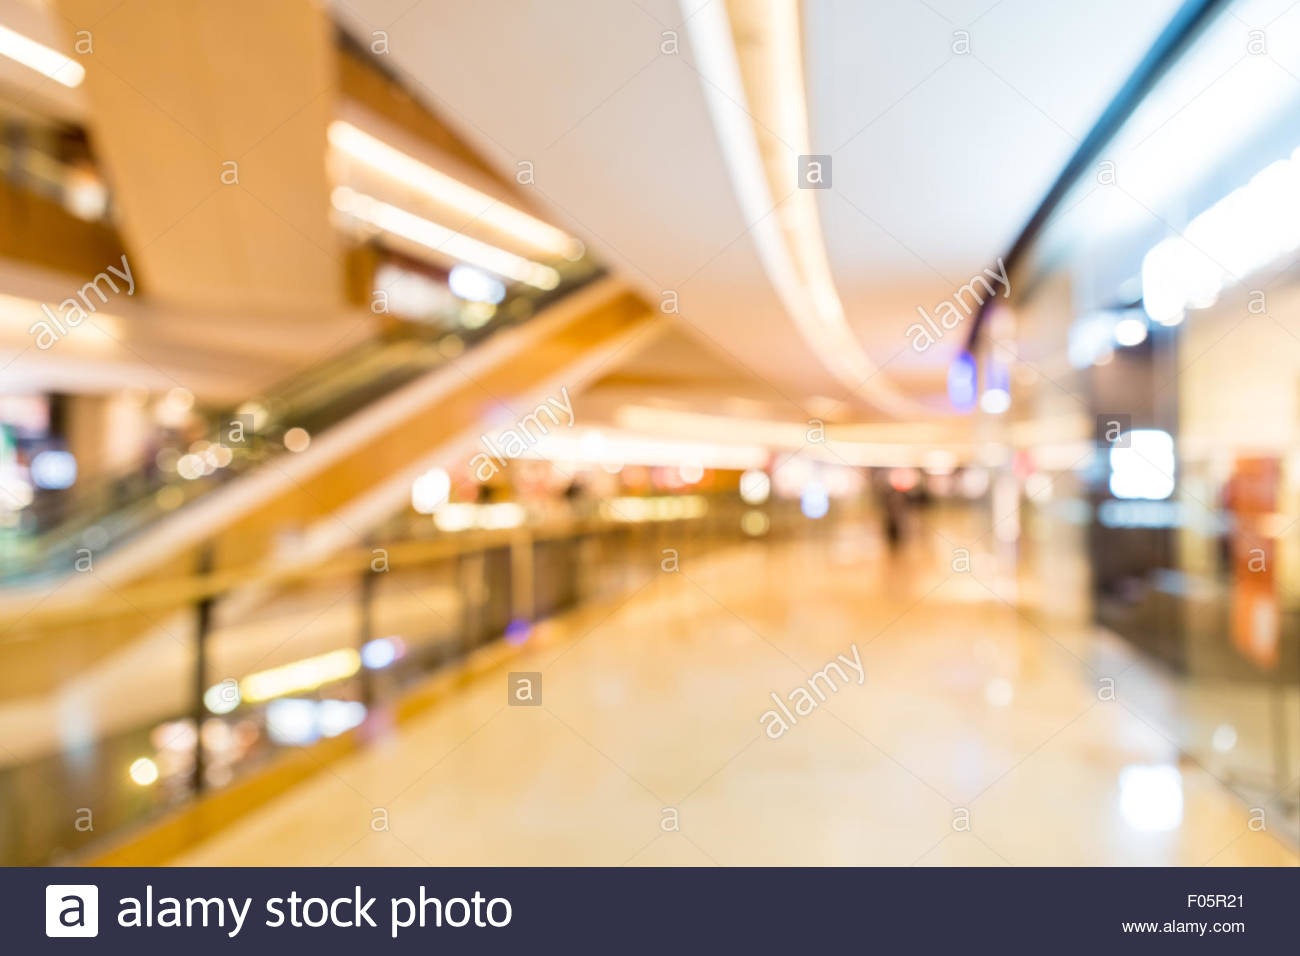 Blurred shopping mall background Stock Photo 86179689   Alamy 1300x956